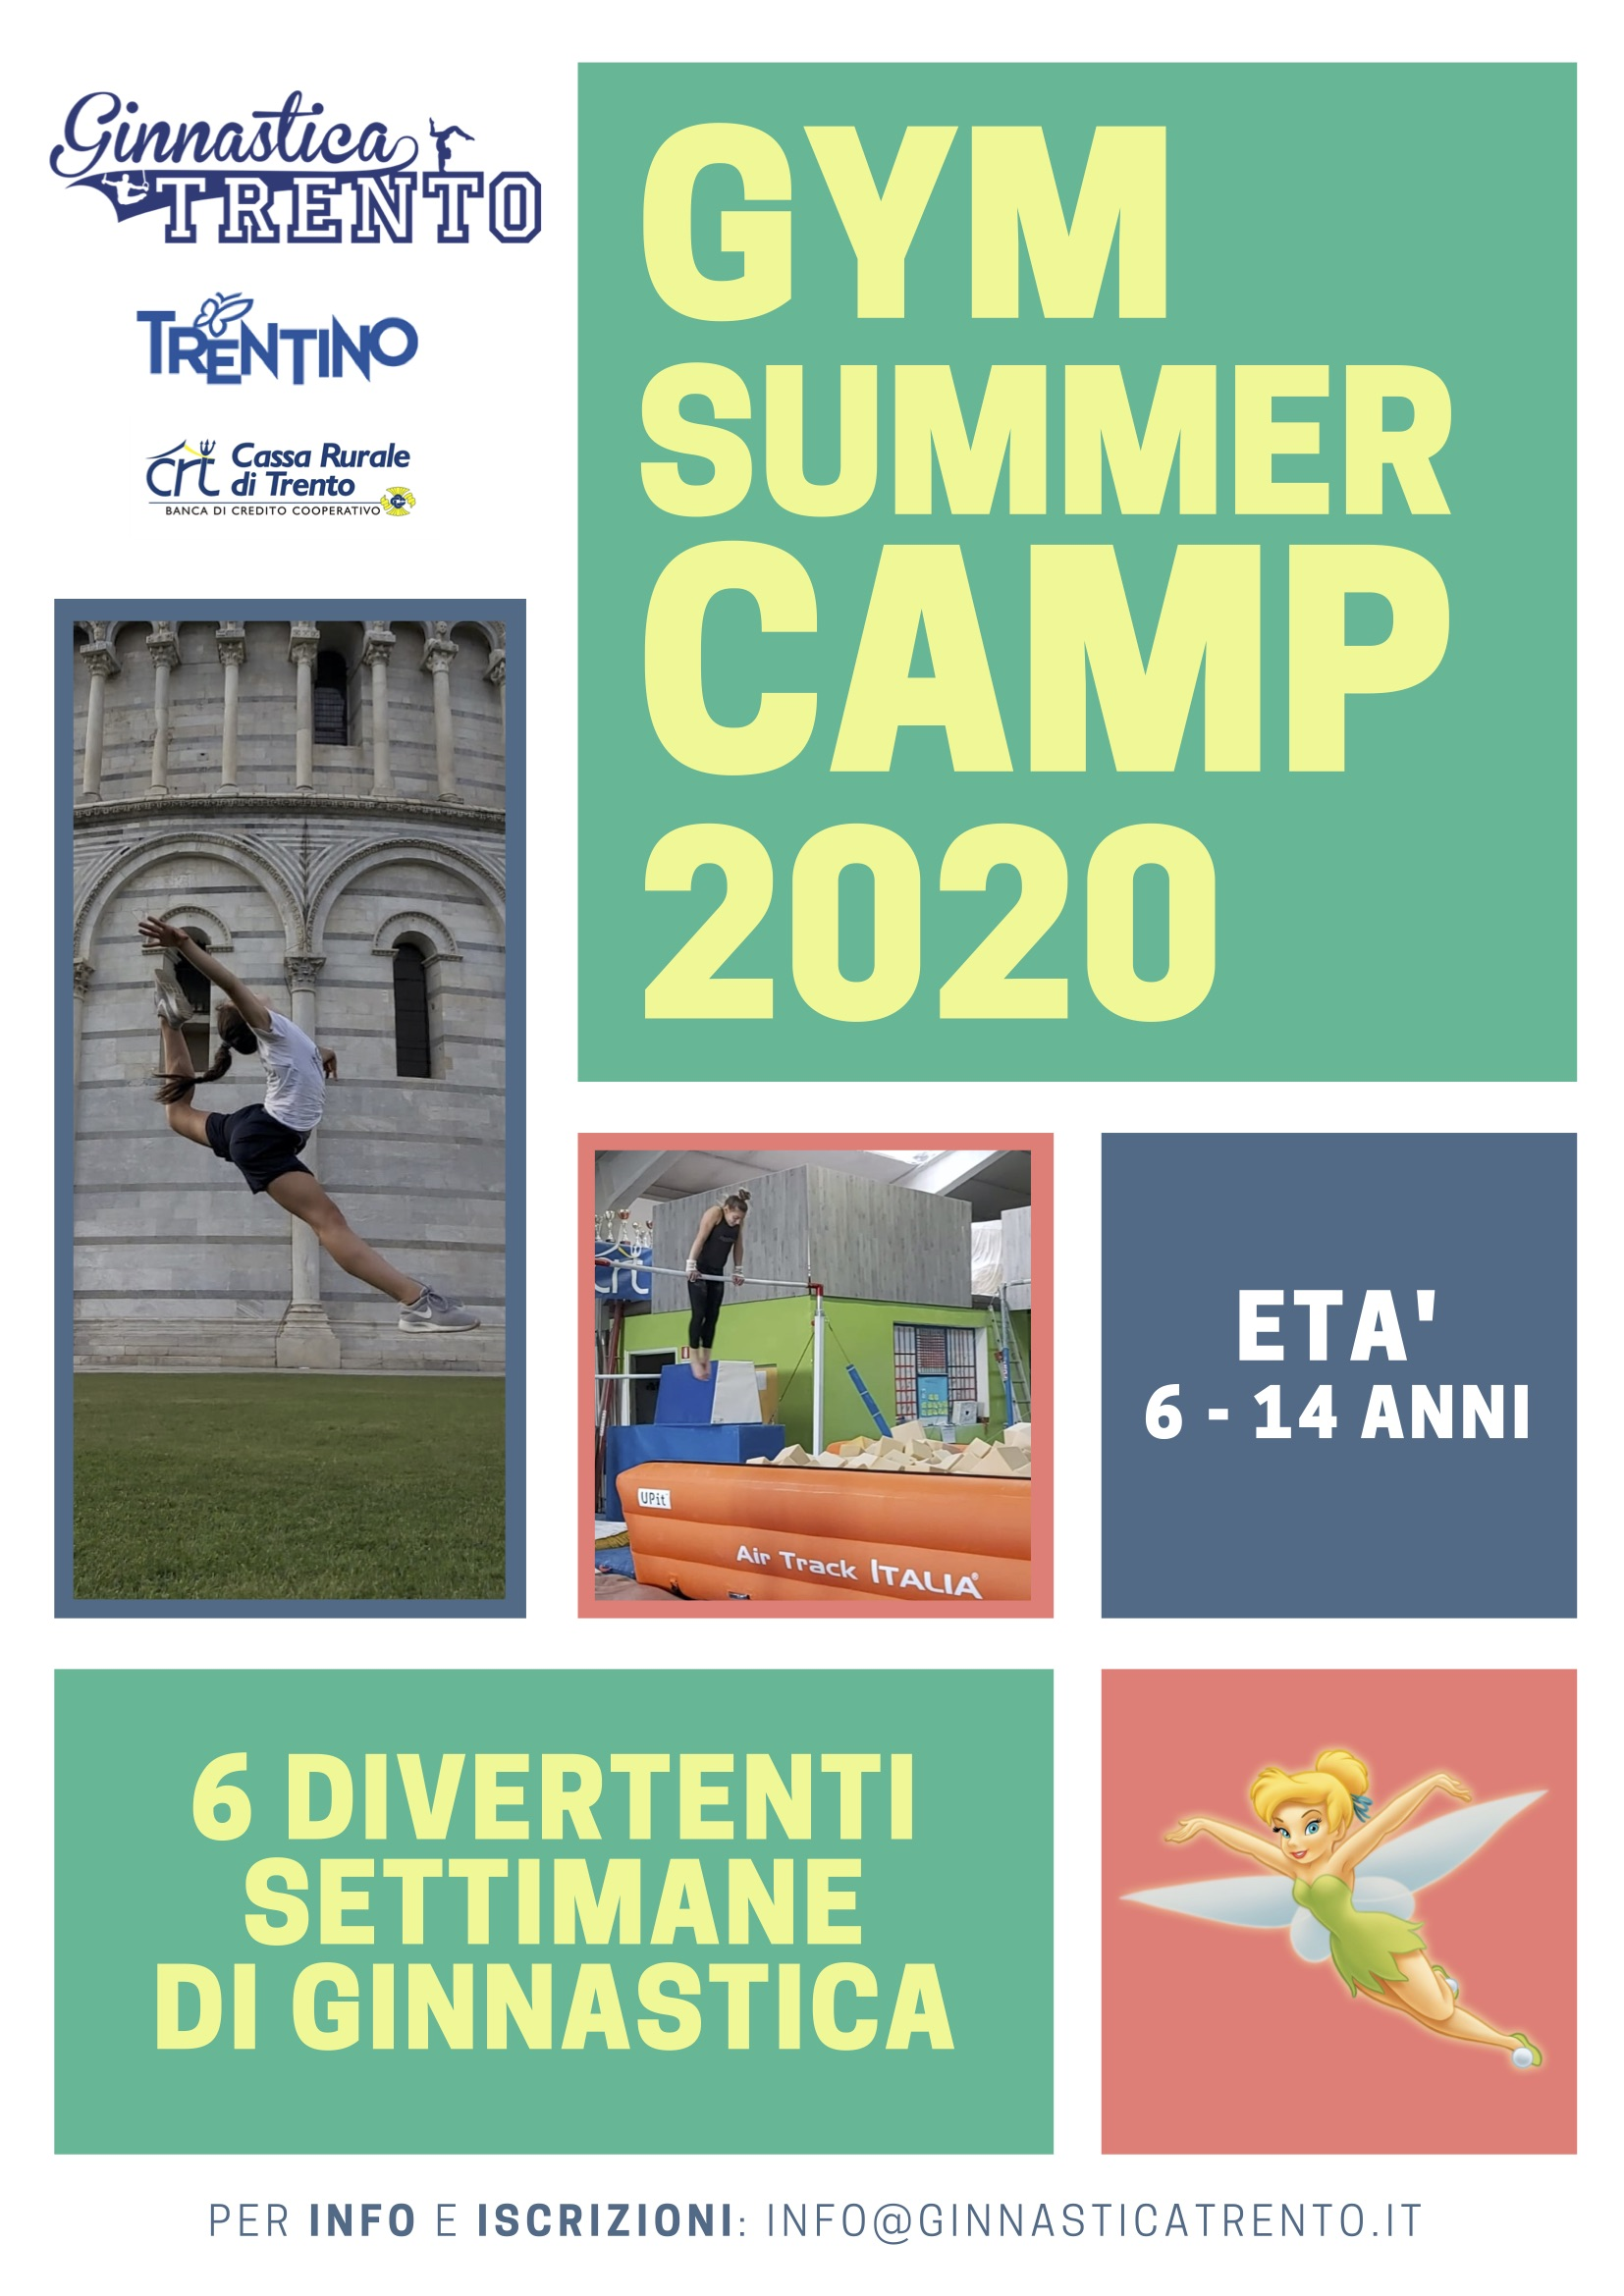 GYM SUMMER CAMP 2020 fronte